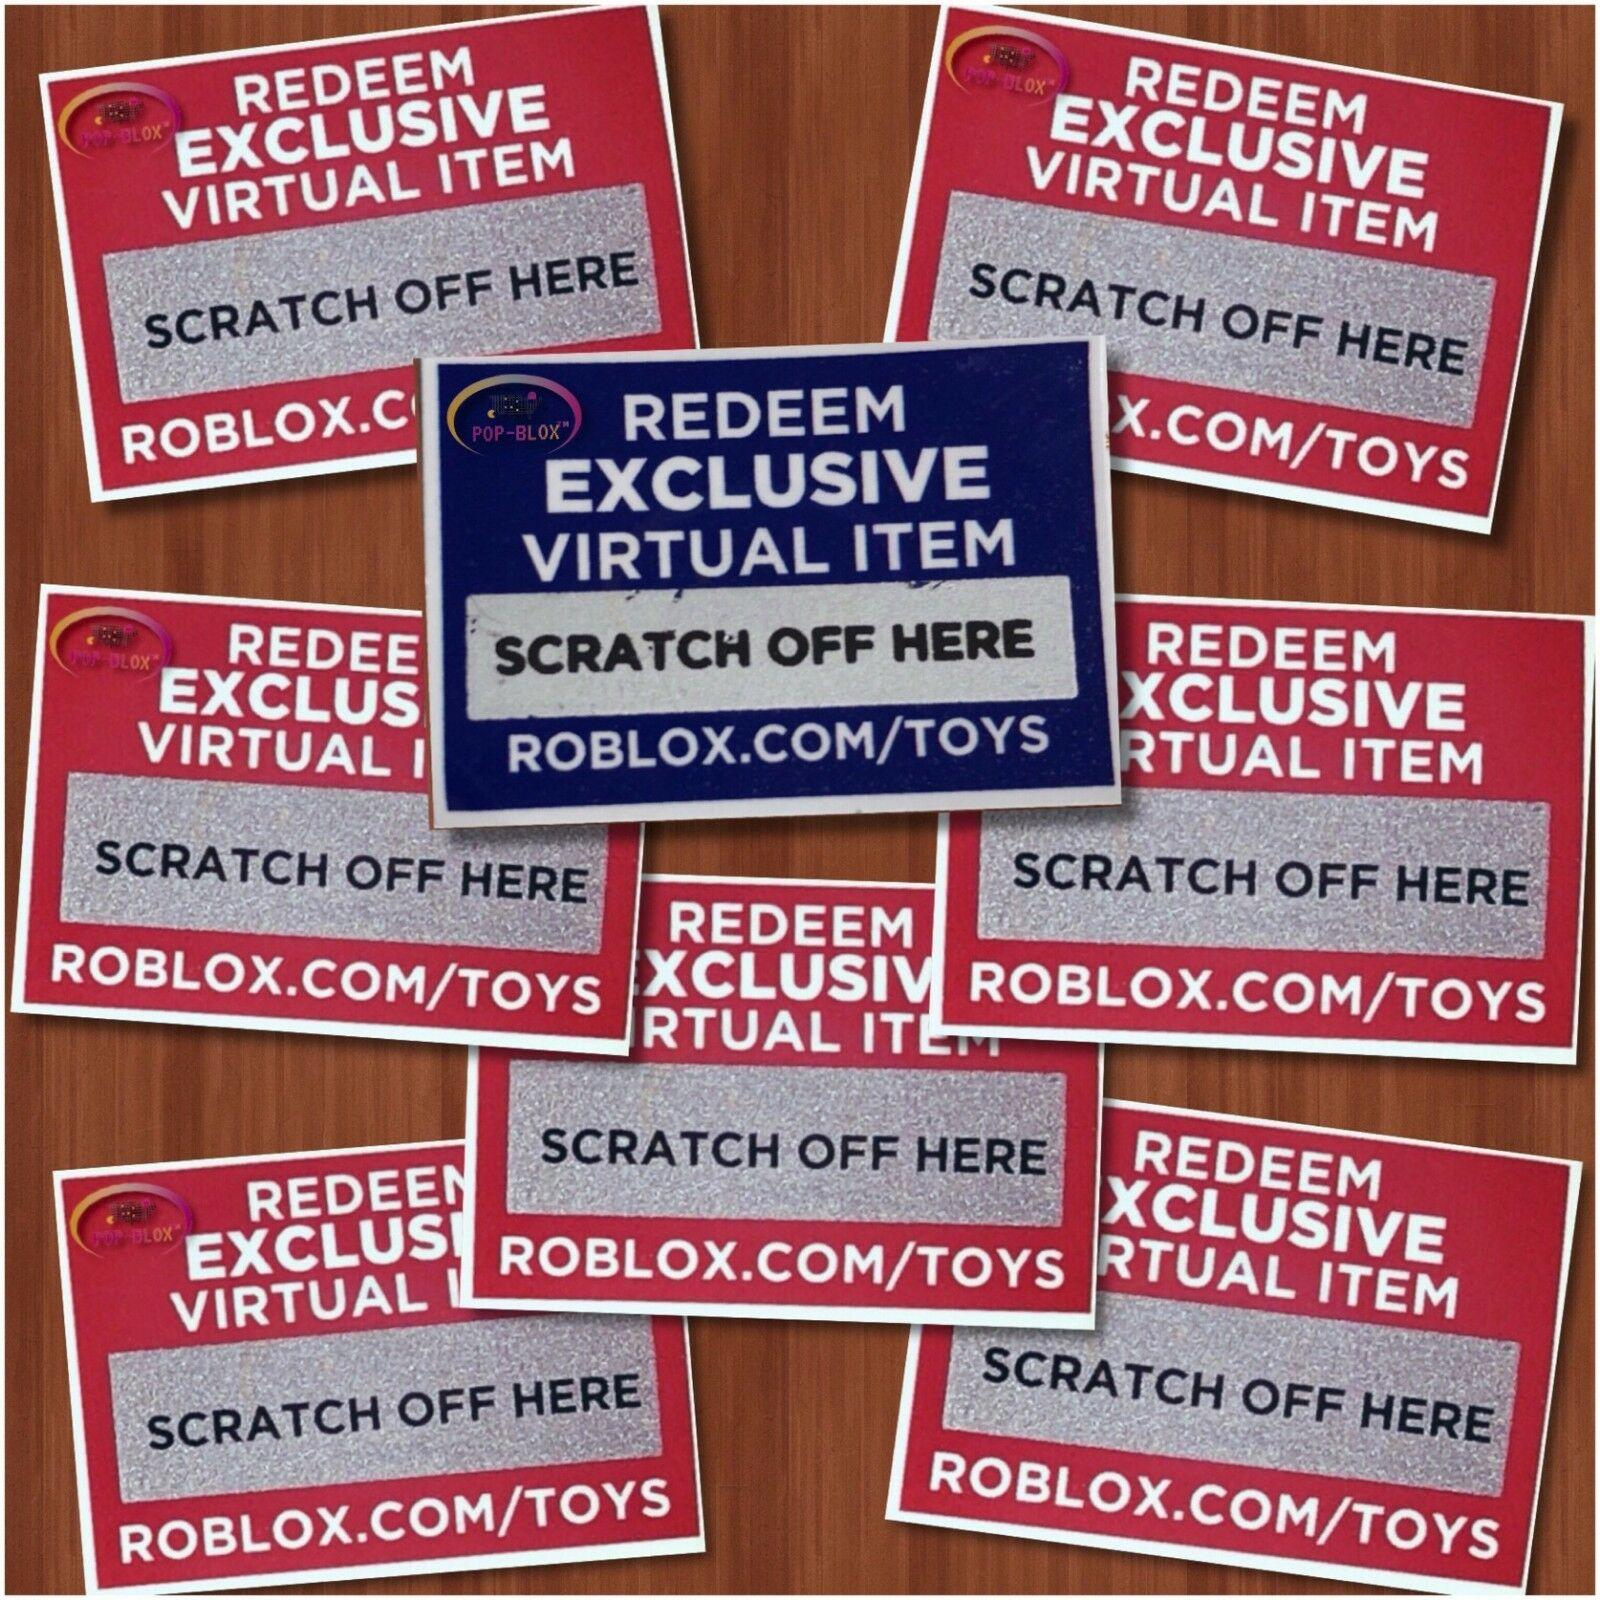 Roblox Exclusive Online 2020 Codes Only Celebrity Gold Series 1 2 3 4 5 6 7 Toys Ebay